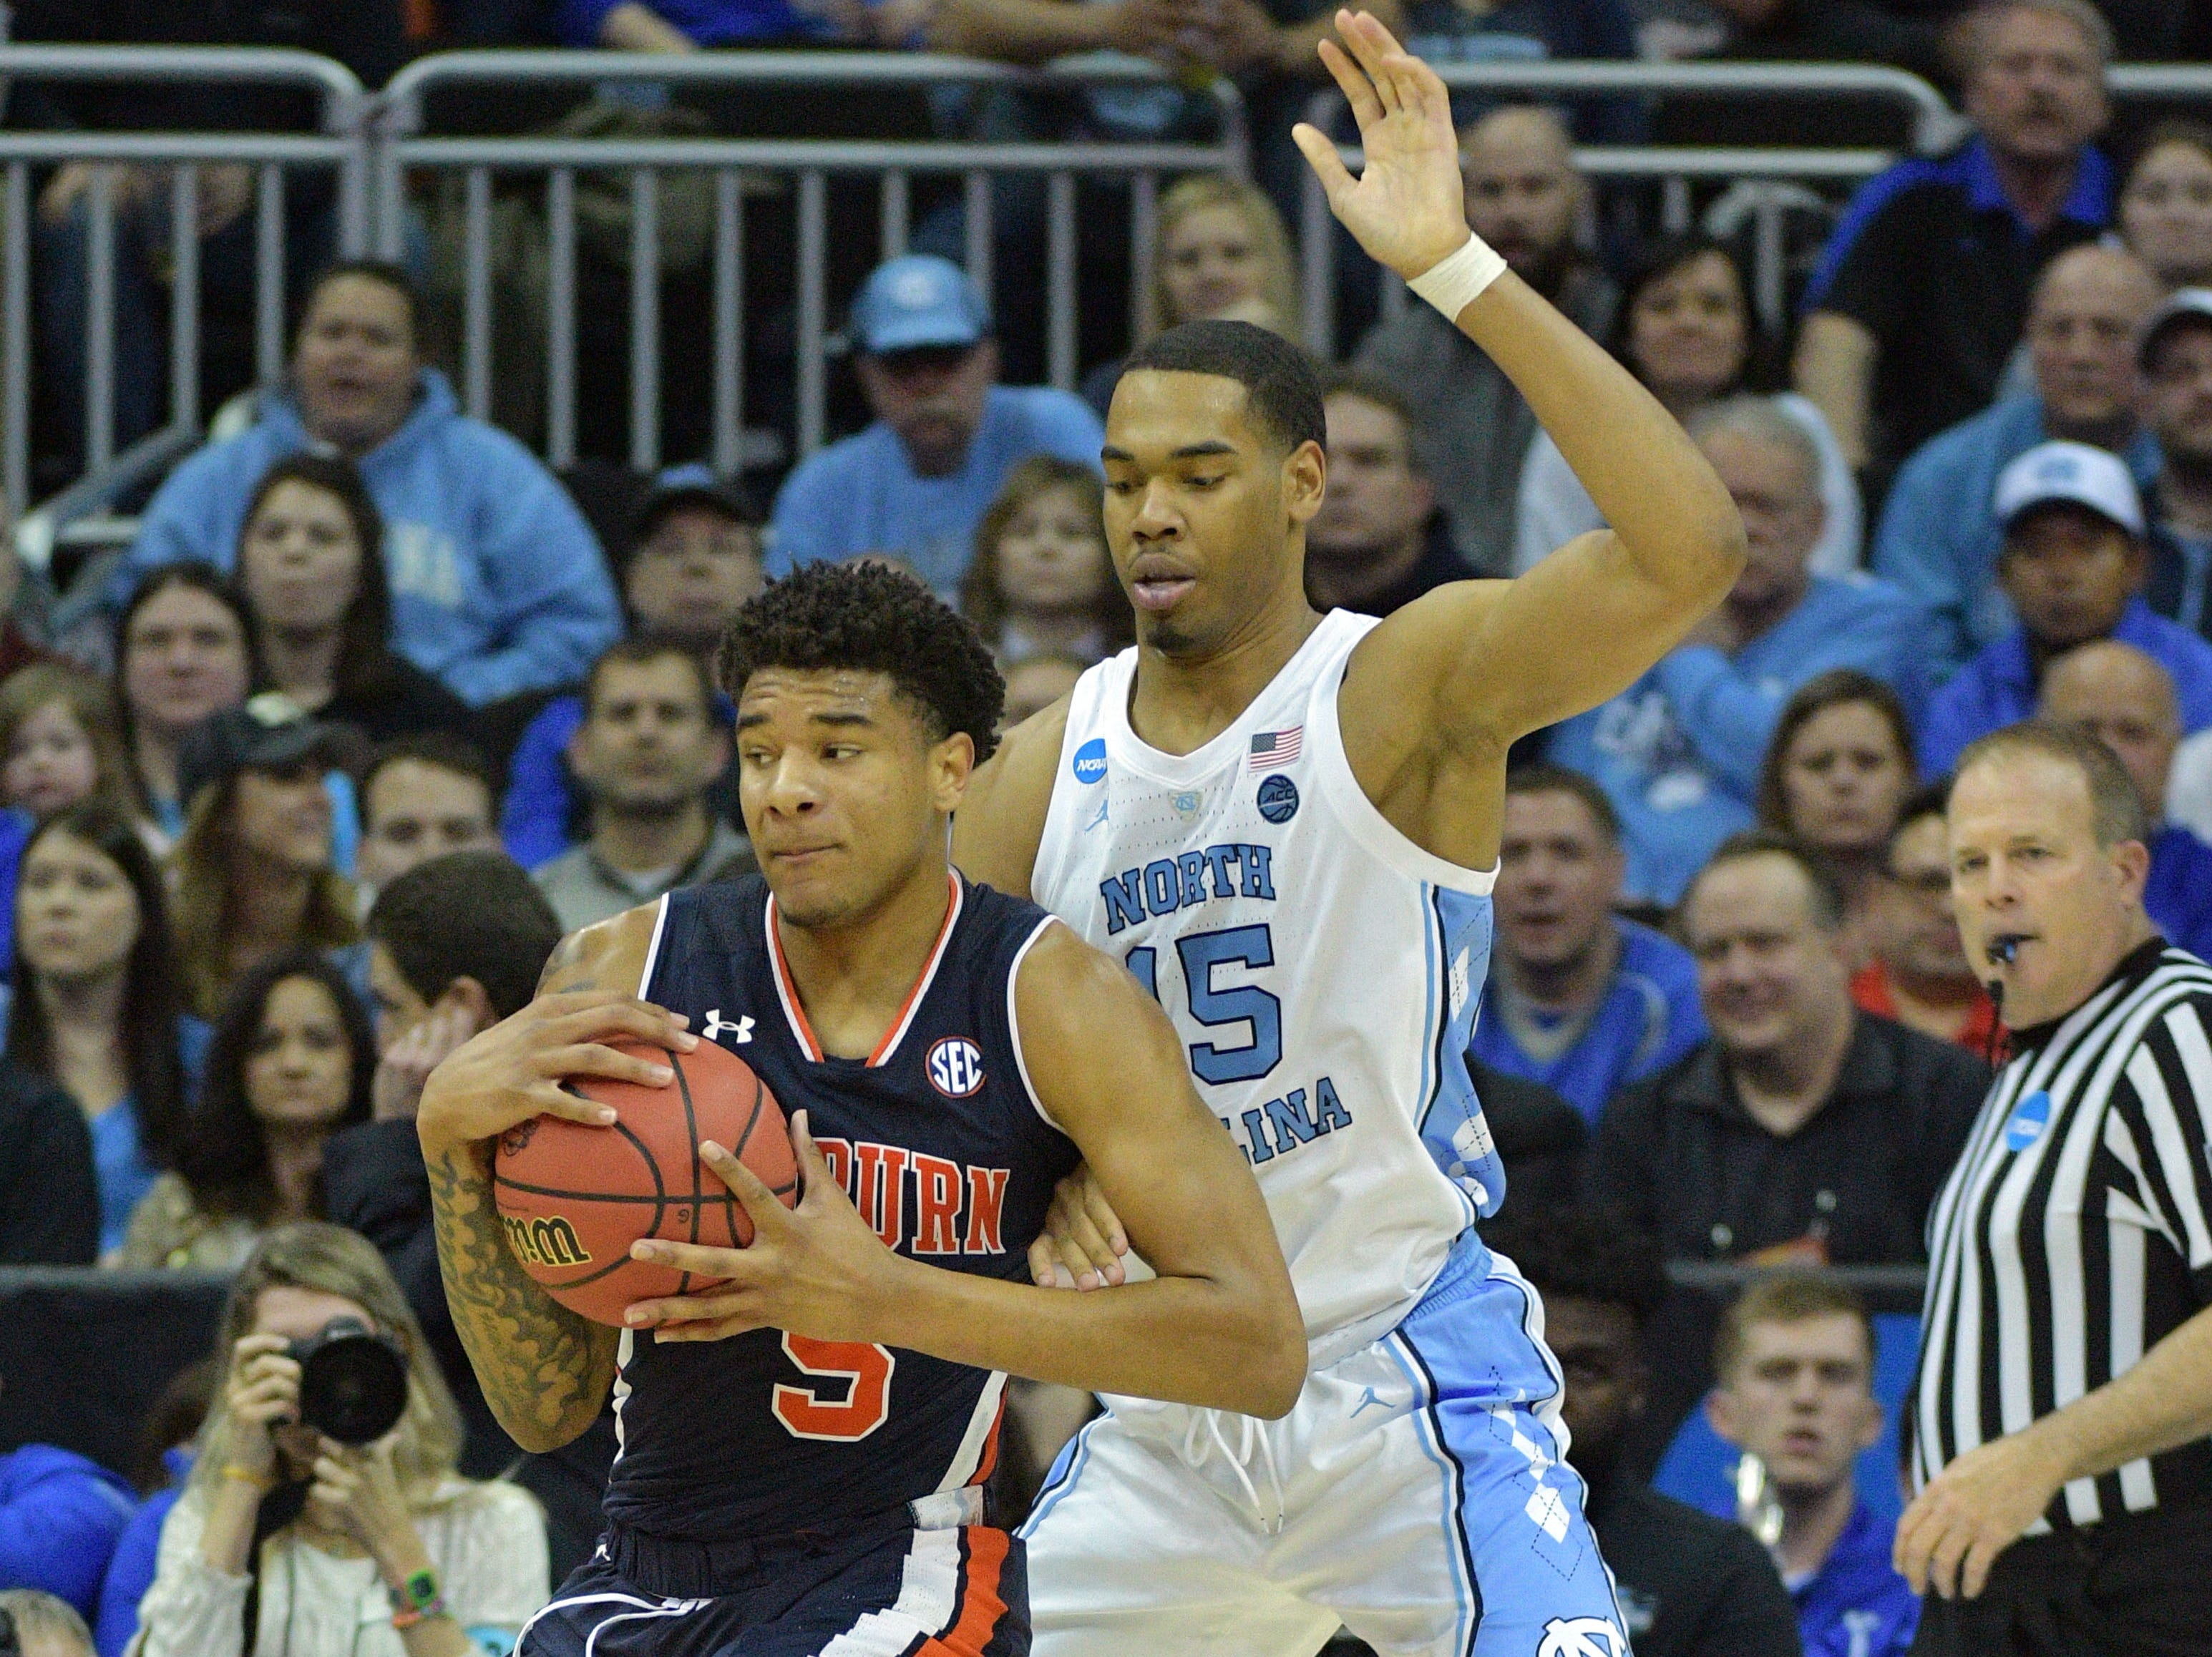 Mar 29, 2019; Kansas City, MO, United States; Auburn Tigers forward Chuma Okeke (5) posts up against North Carolina Tar Heels forward Garrison Brooks (15) during the second half in the semifinals of the midwest regional of the 2019 NCAA Tournament at Sprint Center. Mandatory Credit: Denny Medley-USA TODAY Sports